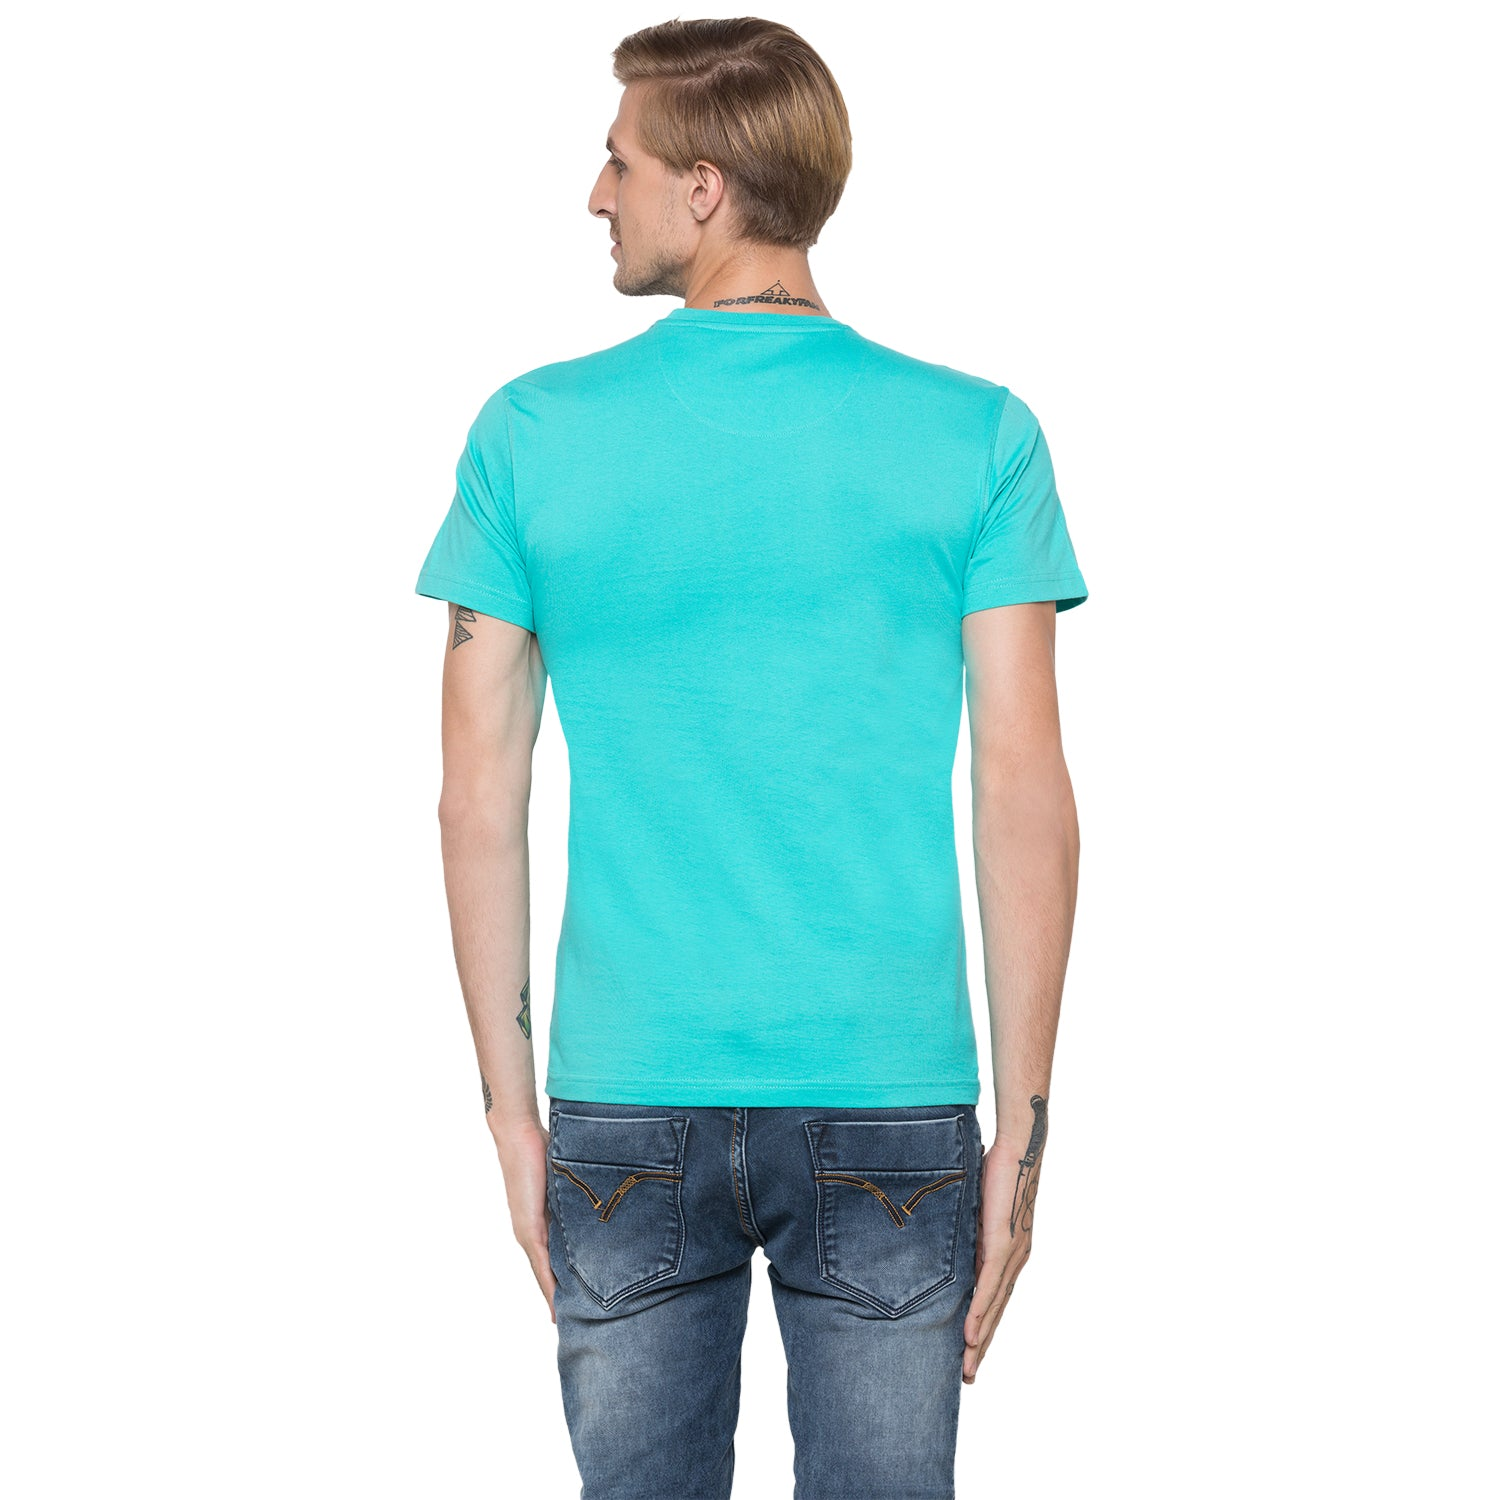 Globus Green Printed T-Shirt-3